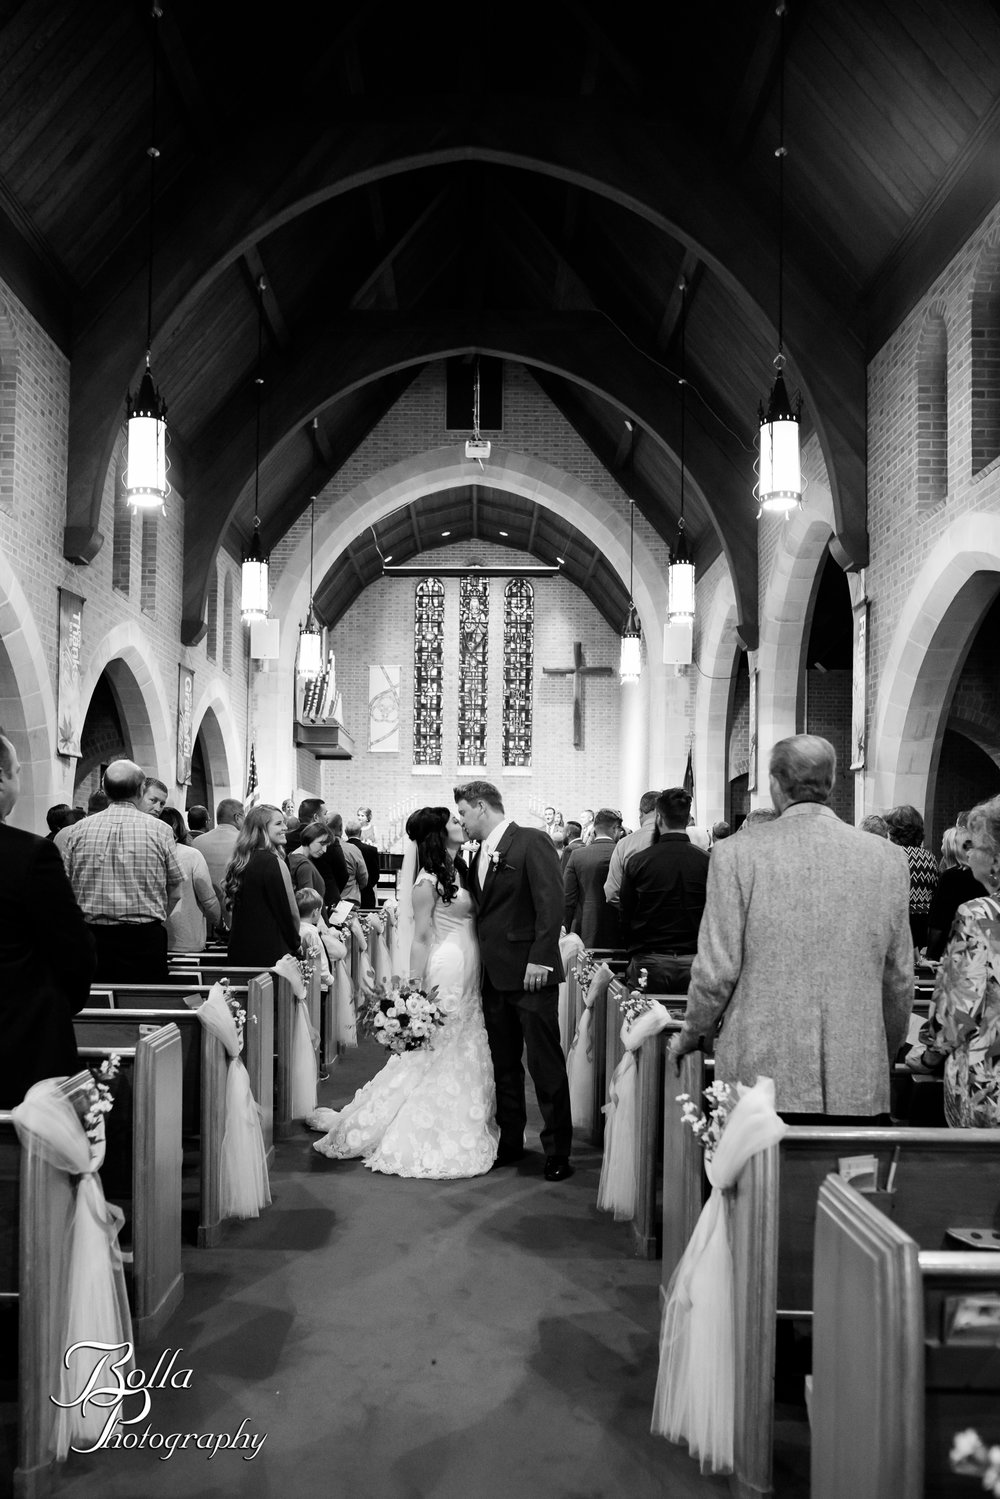 Bolla_photography_edwardsville_wedding_photographer_st_louis_weddings_Reilmann-0200.jpg